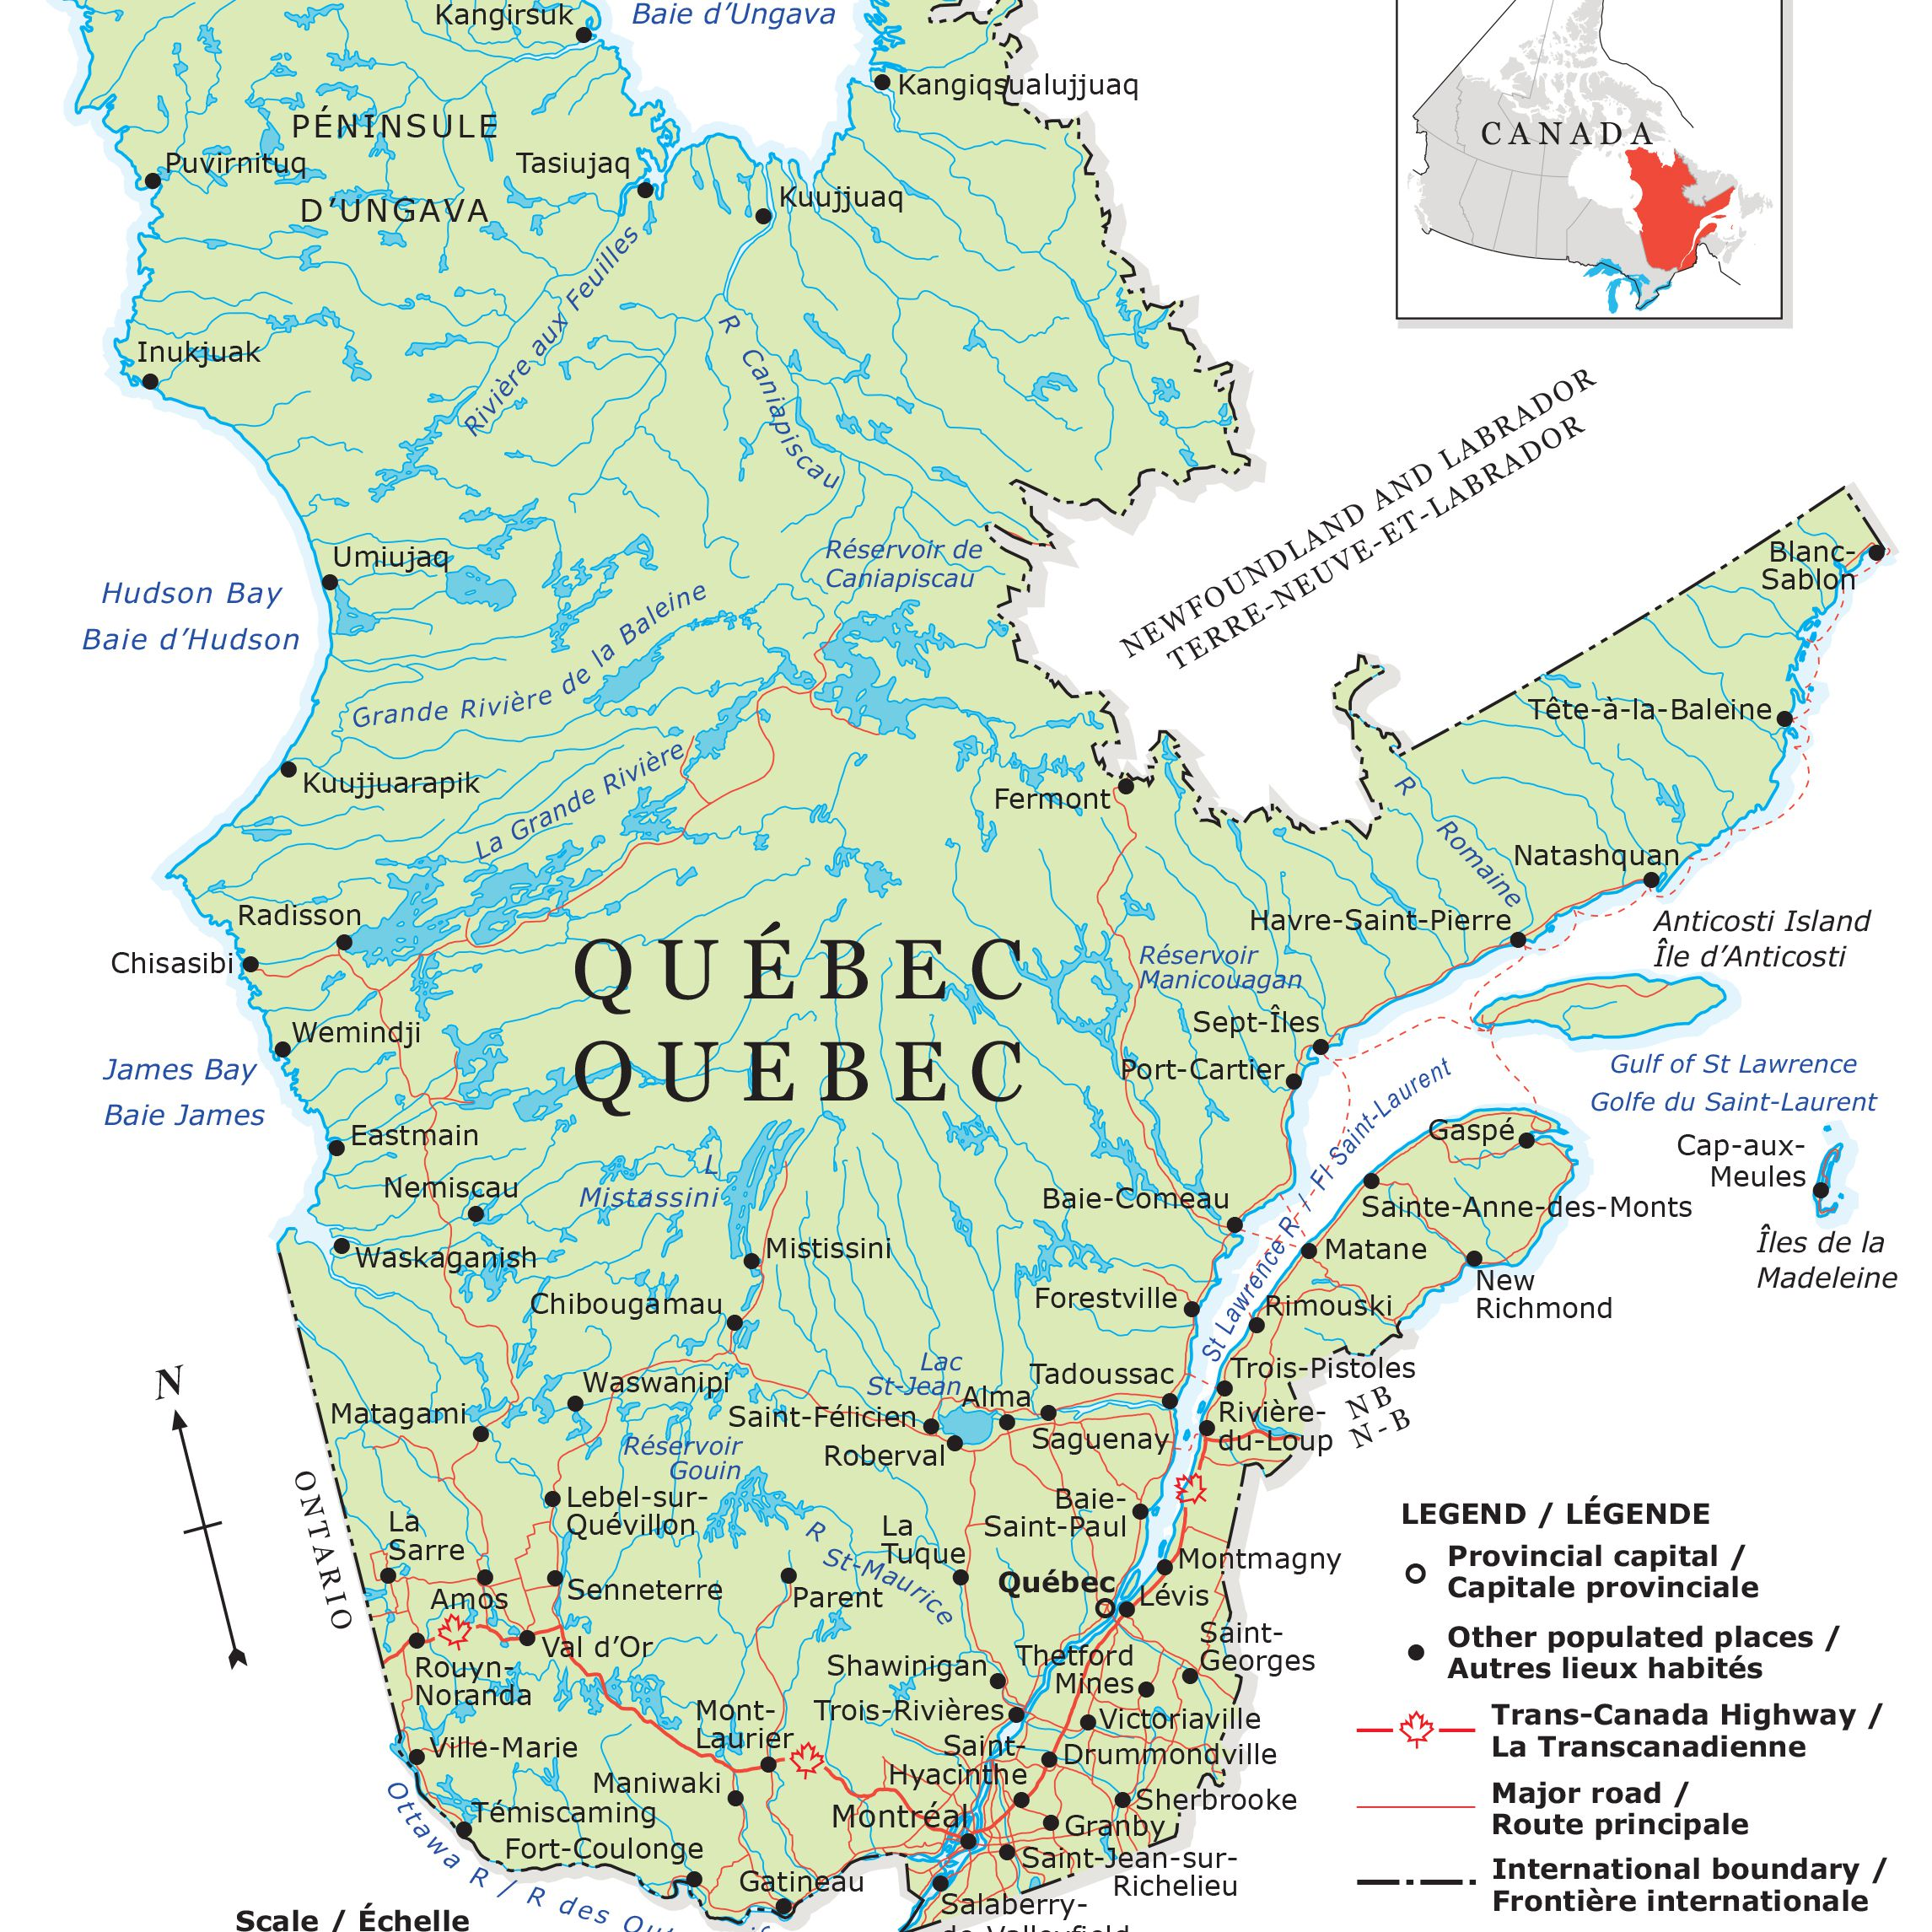 Map Of Canada With Cities And Provinces.Guide To Canadian Provinces And Territories